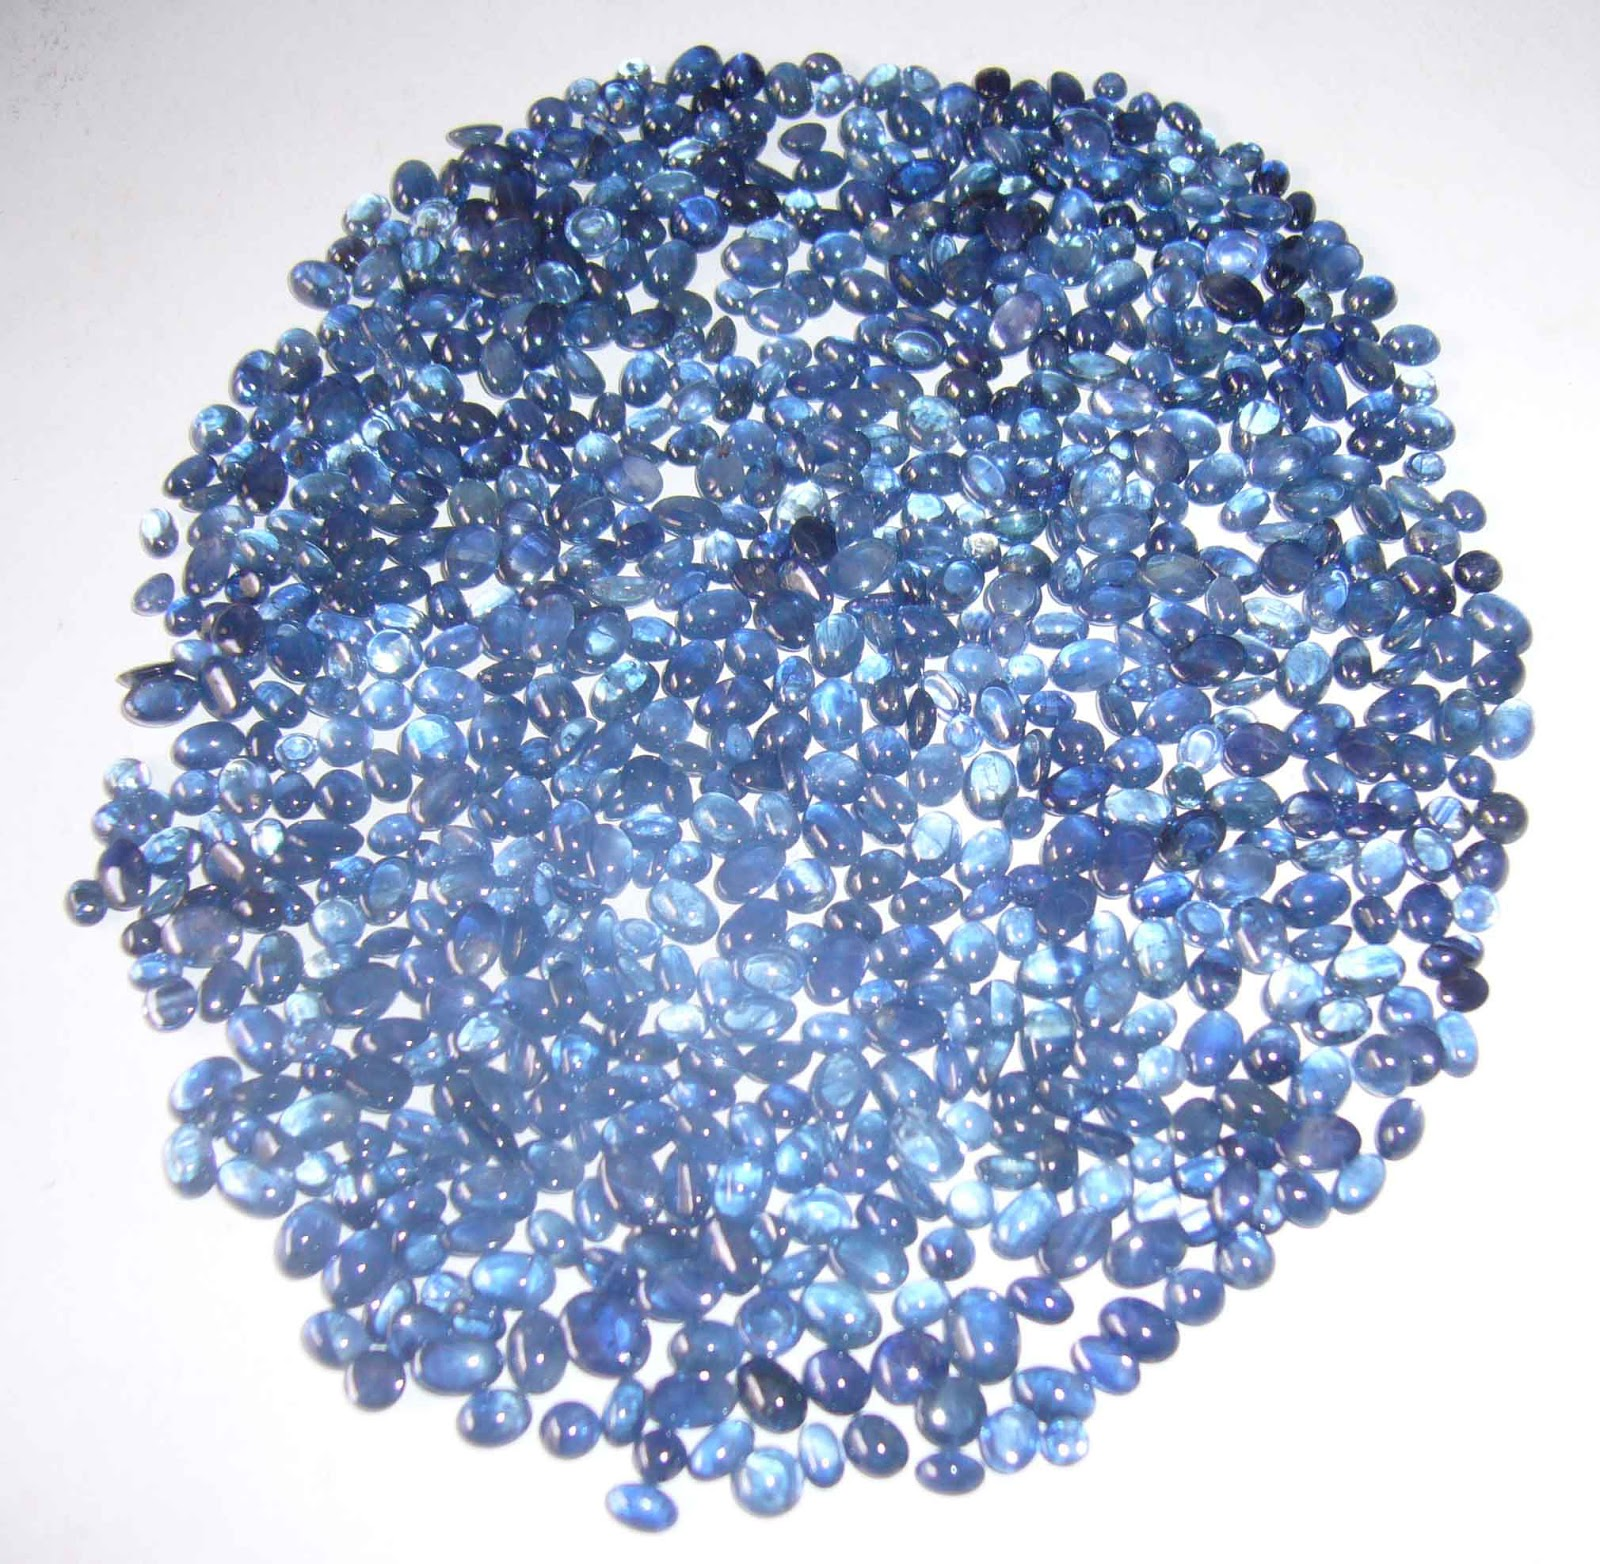 Gems World Ratnapura Is The Most Implortant Region For